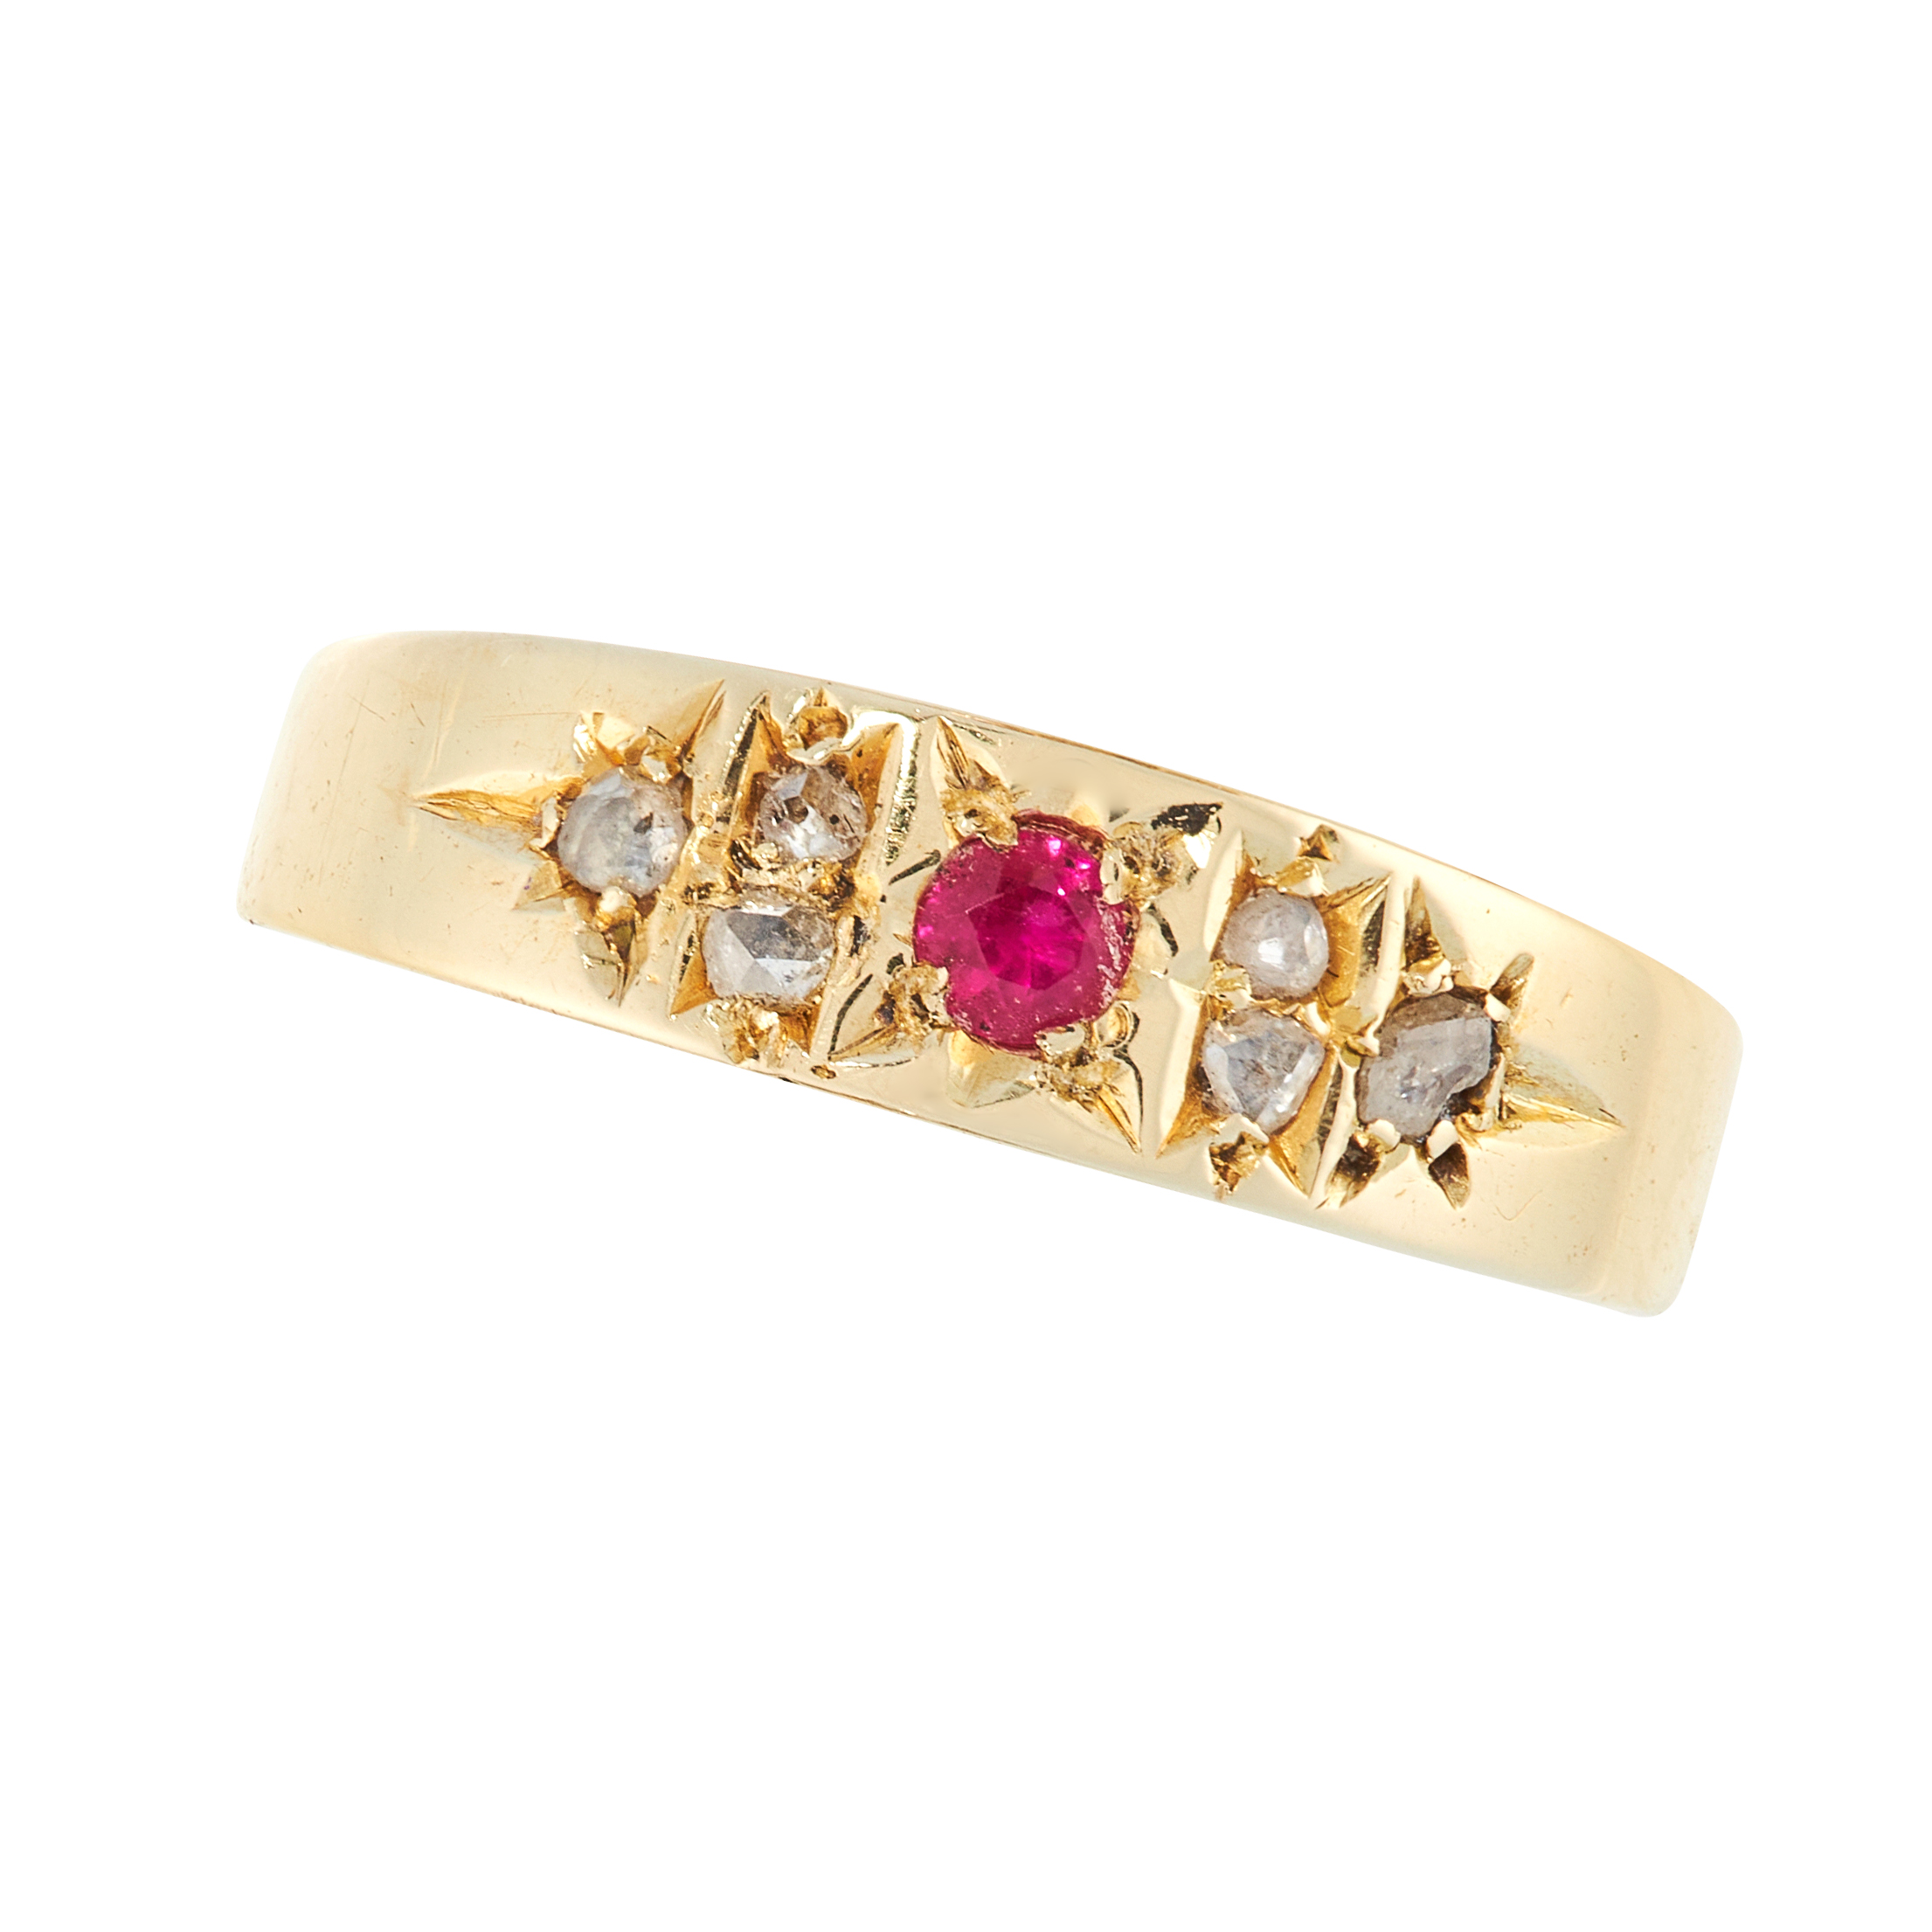 AN ANTIQUE RUBY AND DIAMOND DRESS RING, CIRCA 1900 in 15ct yellow gold, the tapering band set with a